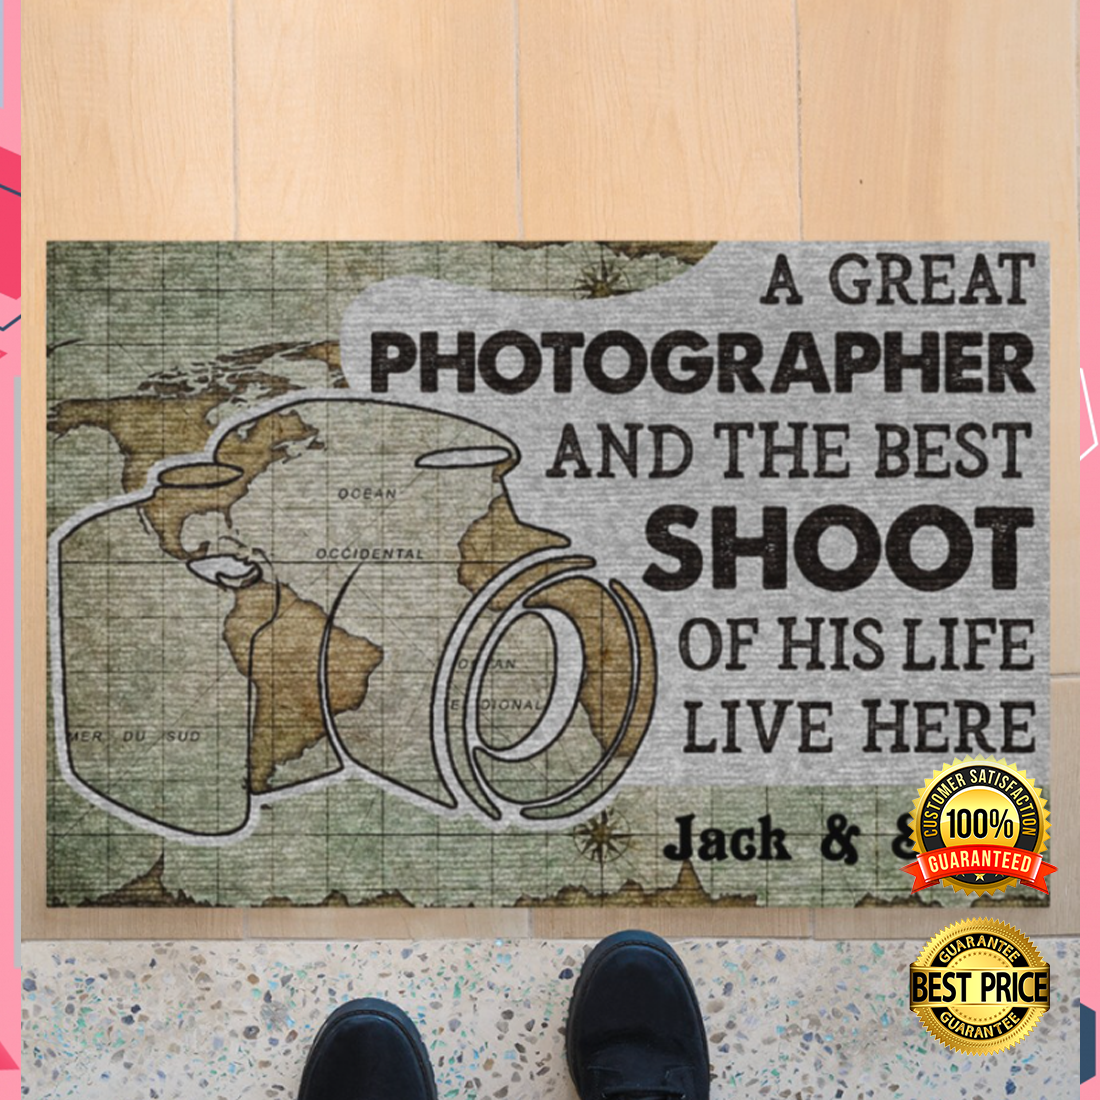 PERSONALIZED A GREAT PHOTOGRAPHER AND THE BEST SHOOT OF HIS LIFE LIVE HERE DOORMAT 6